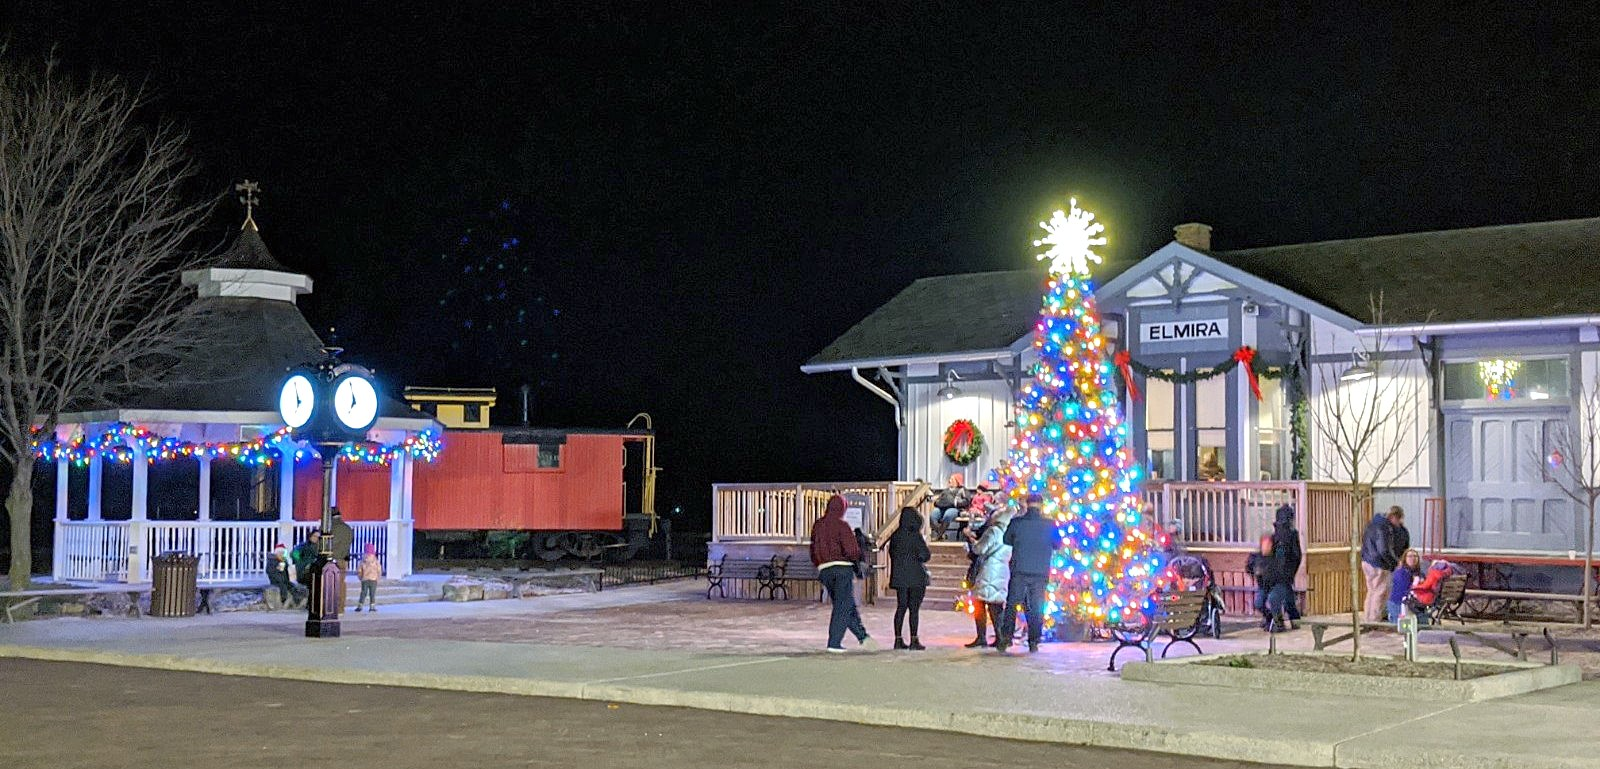 It's beginning to look a lot like Christmas at Sauder Village, which is debuting a new 1920s on Main Street event this year. (Submitted photo)